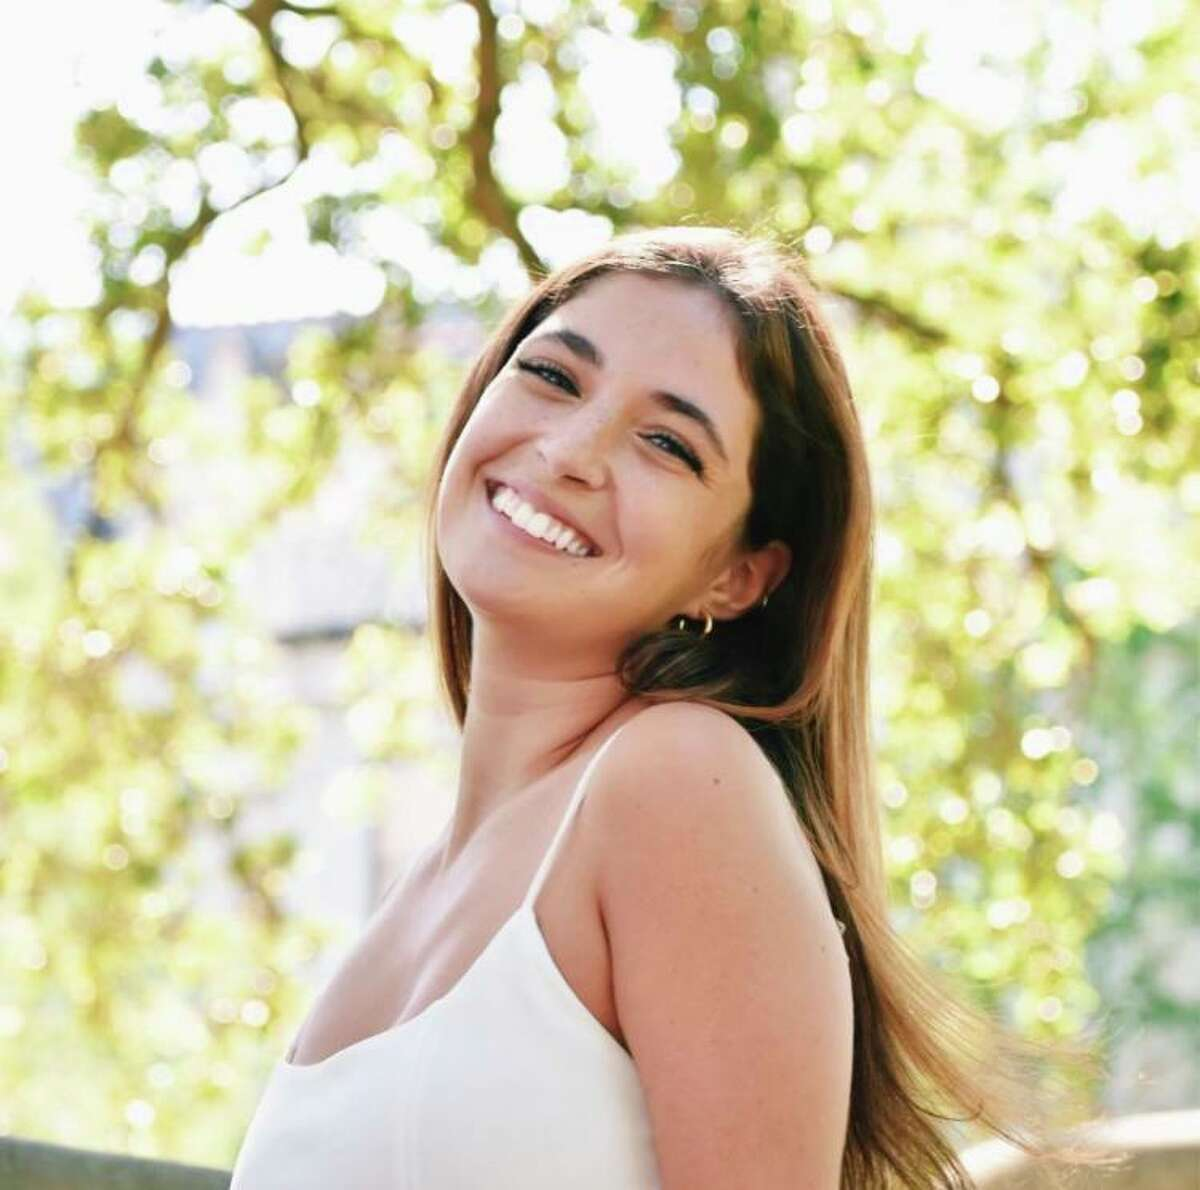 Ridgefield native Emma Cowles, 21, recalled her harried evacuation from New Orleans as hurricane Ida barreled through the city. Cowles attended Tulane University as an undergrad.